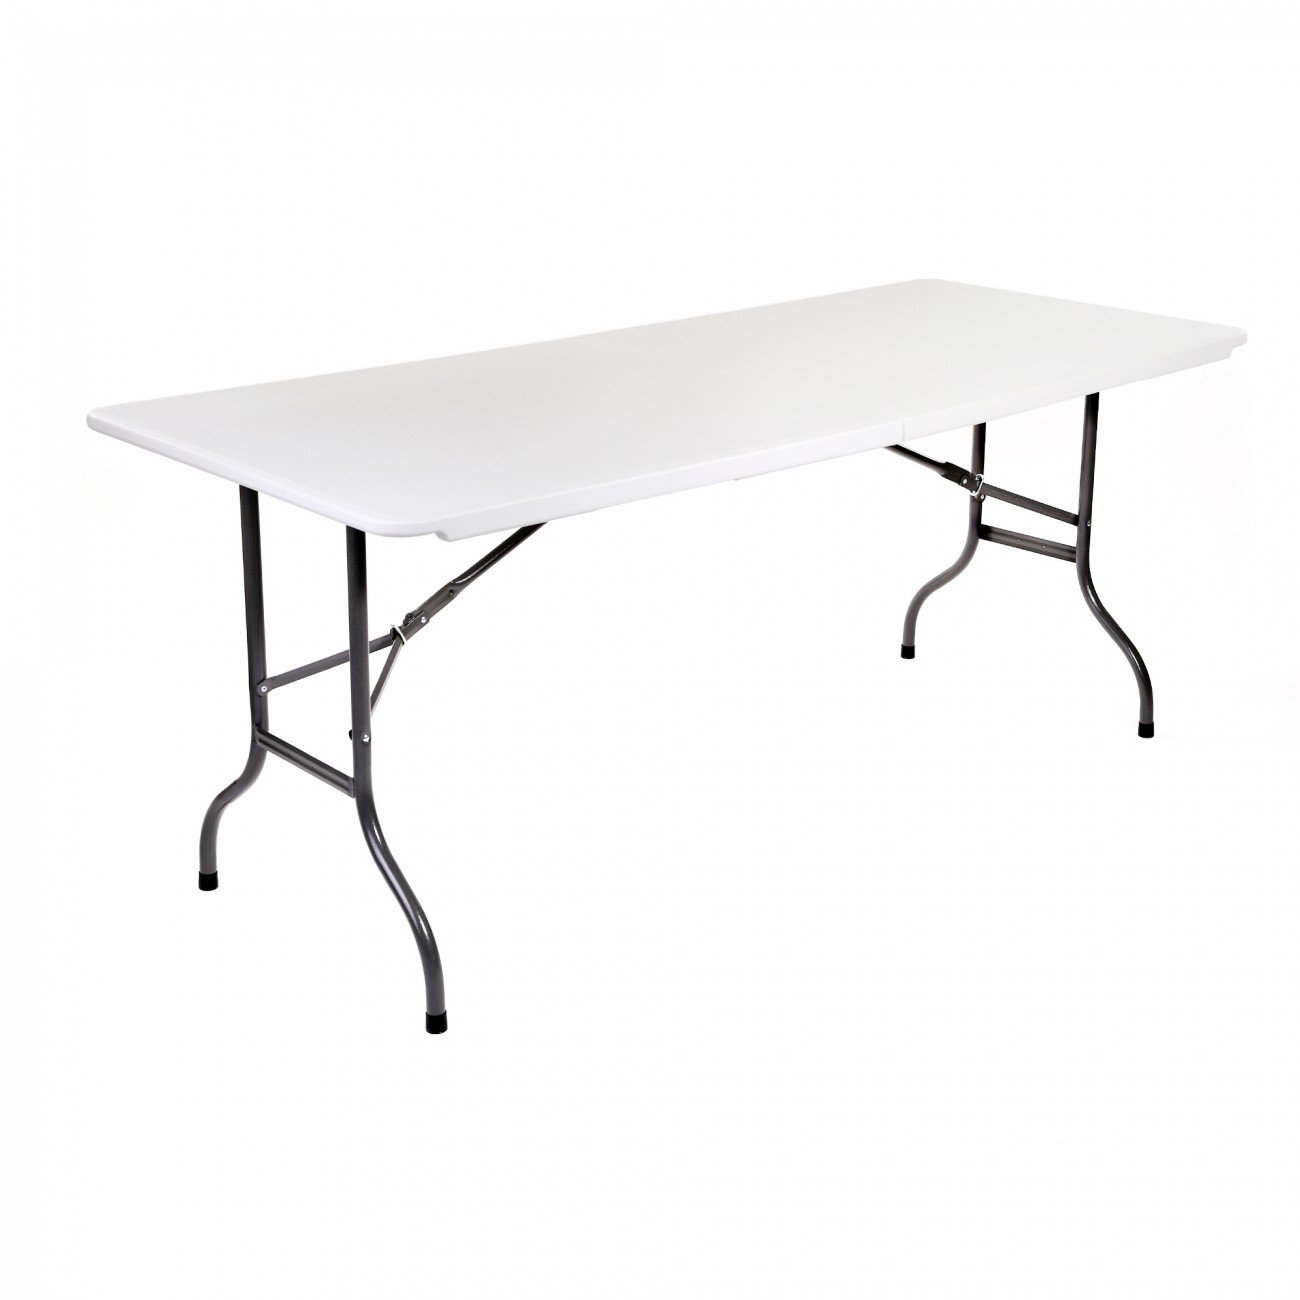 Acheter table pliante table pliable table rabattable table for Table de jardin plastique